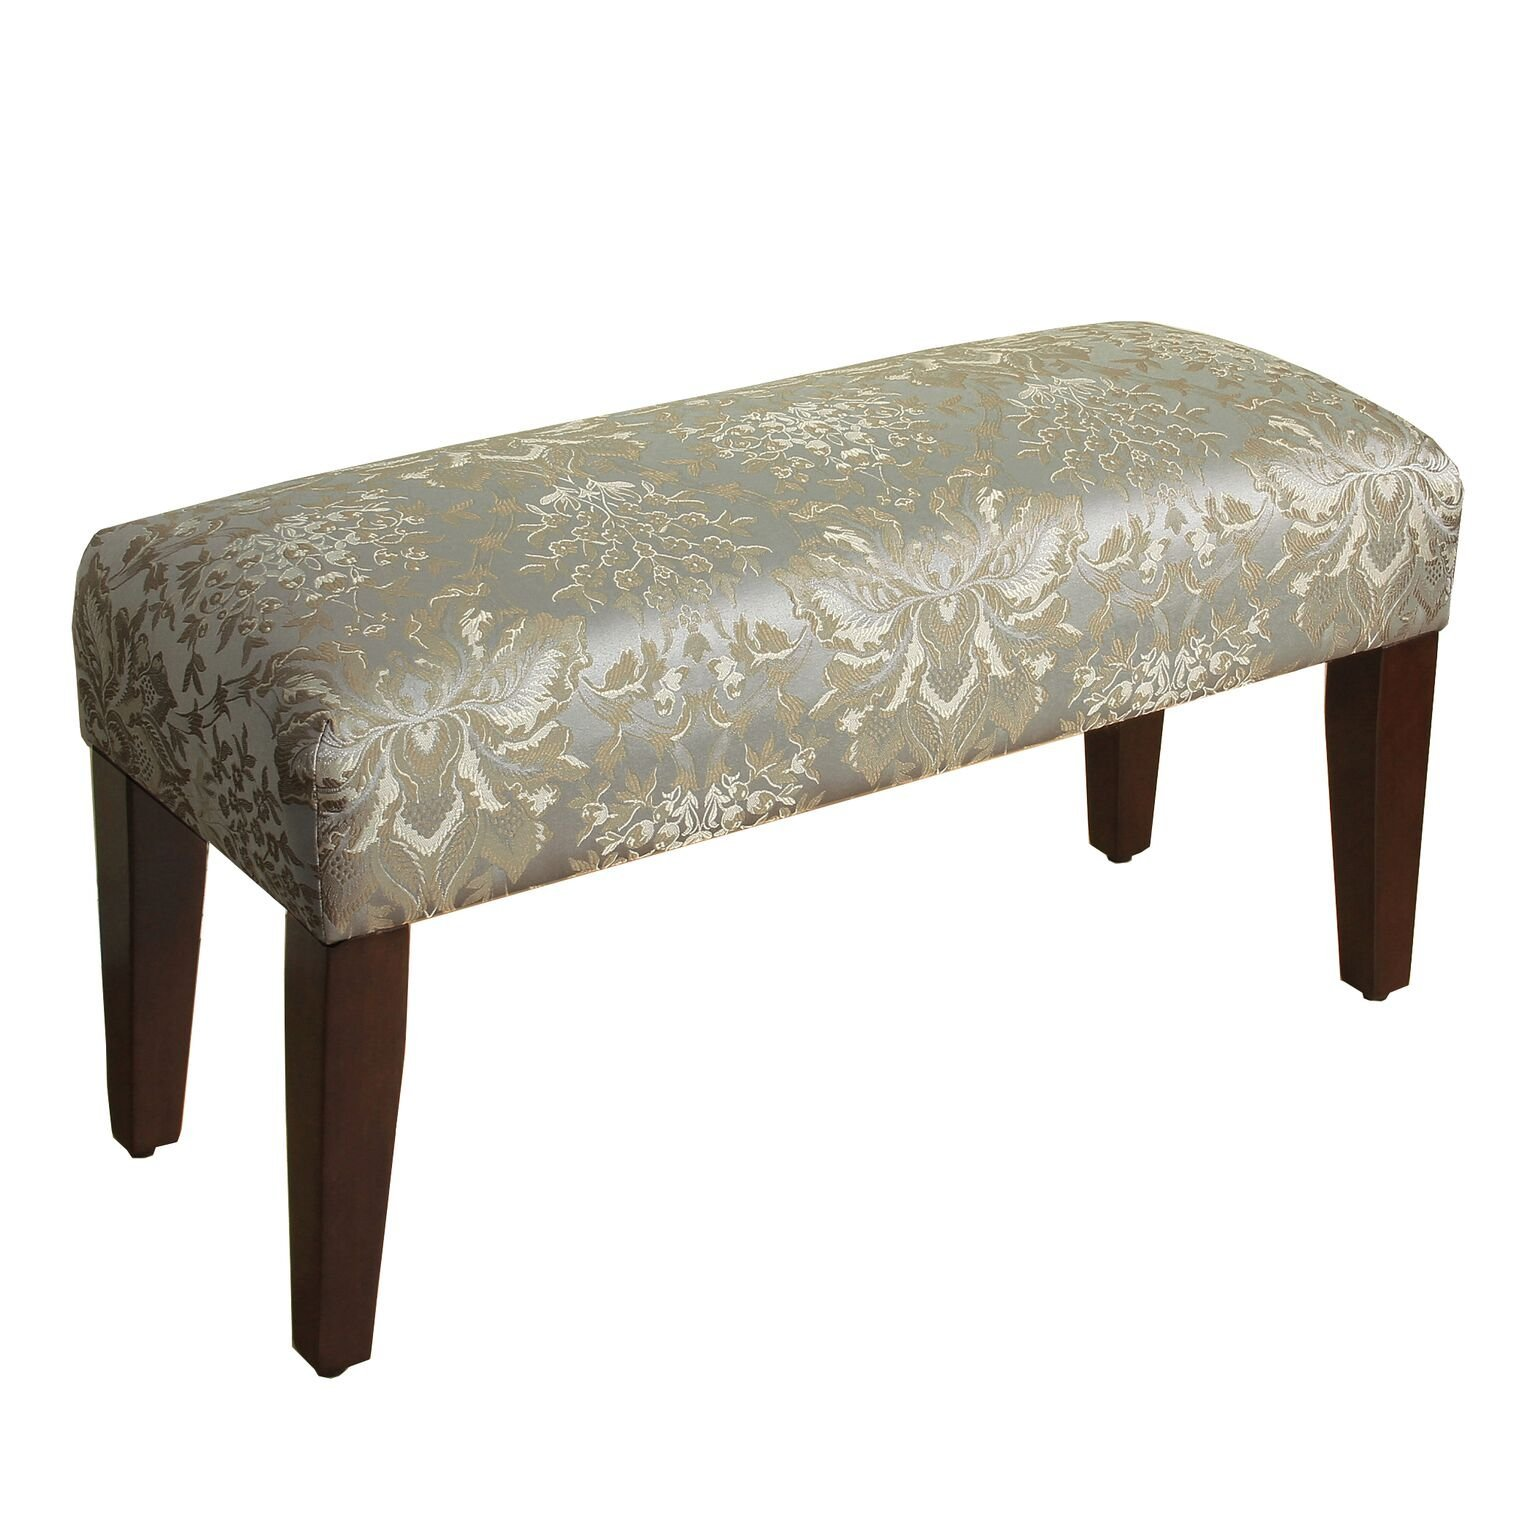 HomePop Upholstered Accent Bench with Wood Legs, Soft Blue Faux Silk Damask